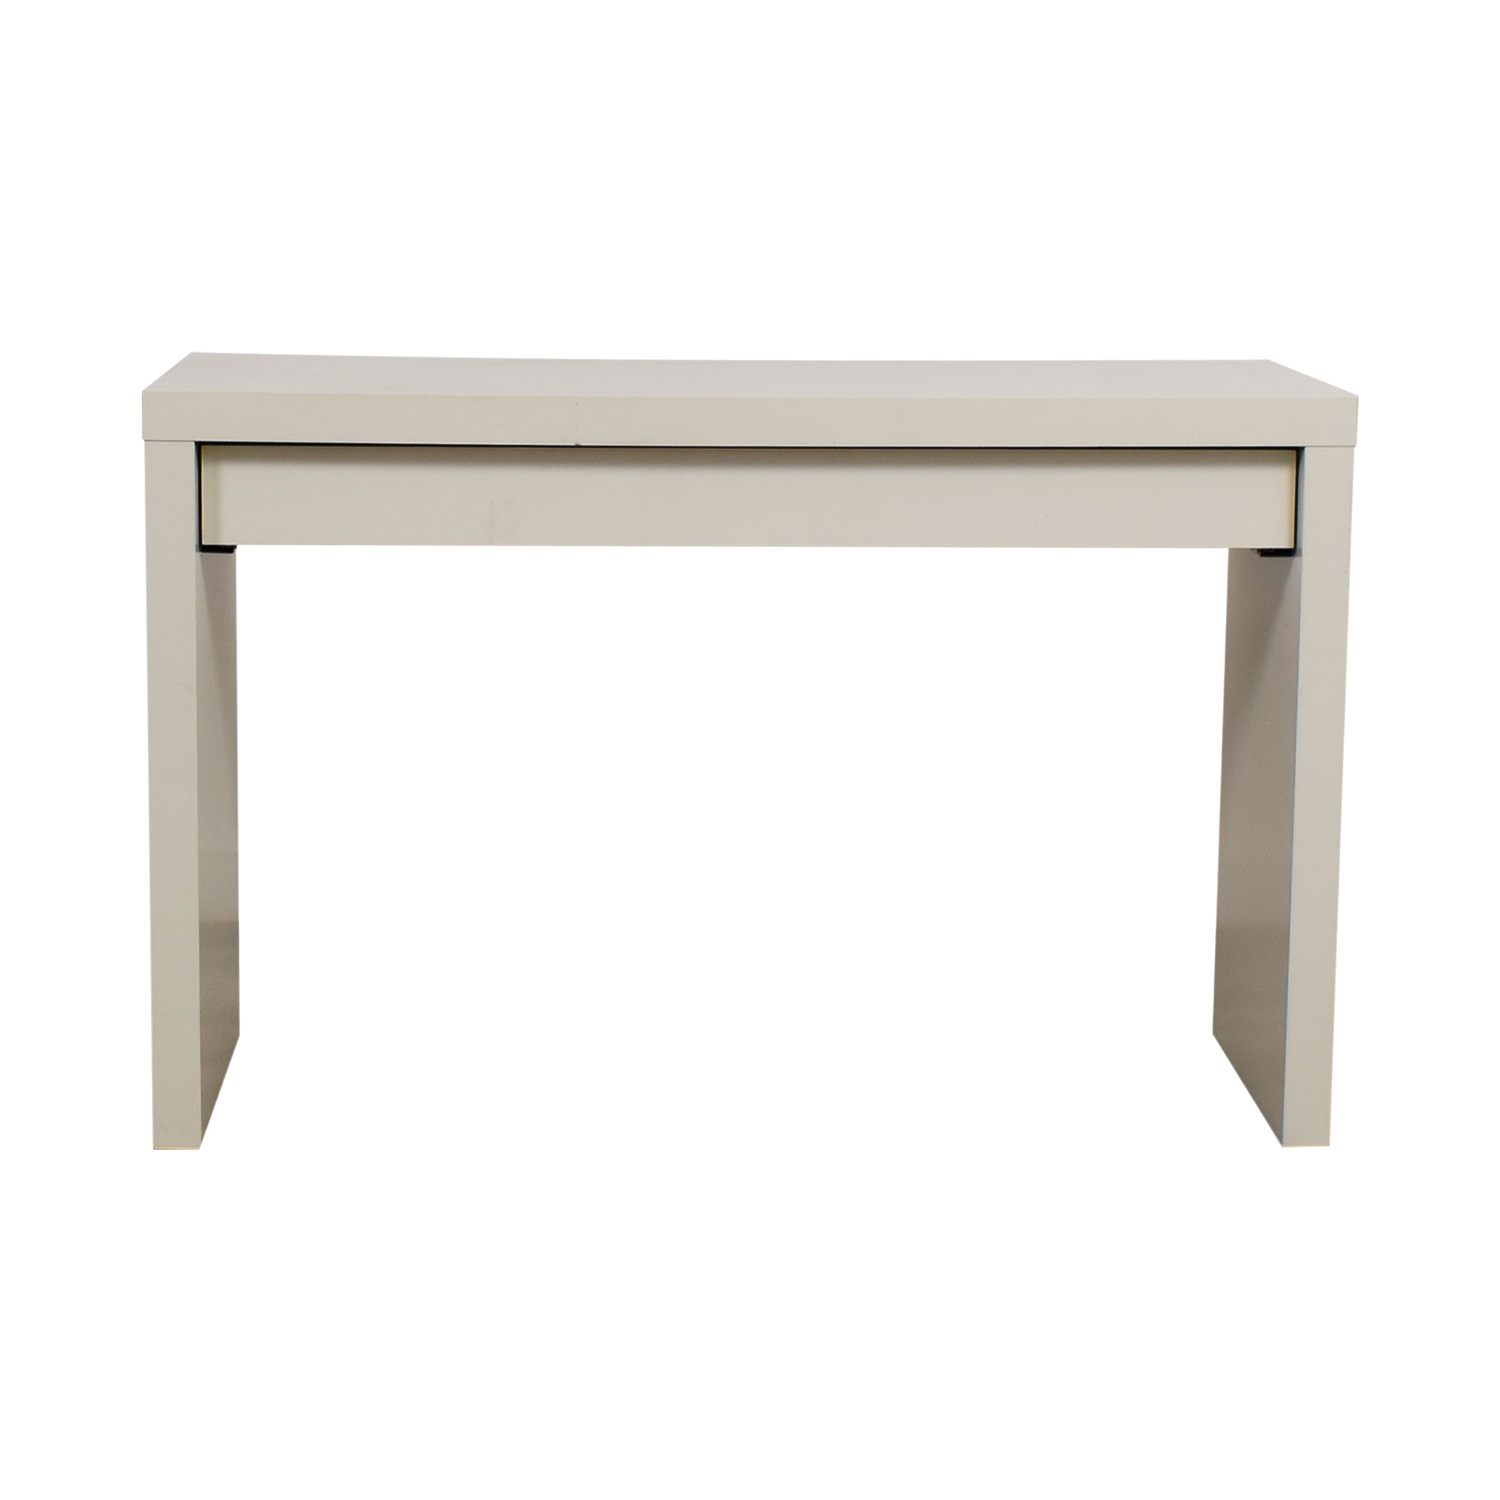 IKEA IKEA Malm White Single Drawer Narrow Desk or Table used